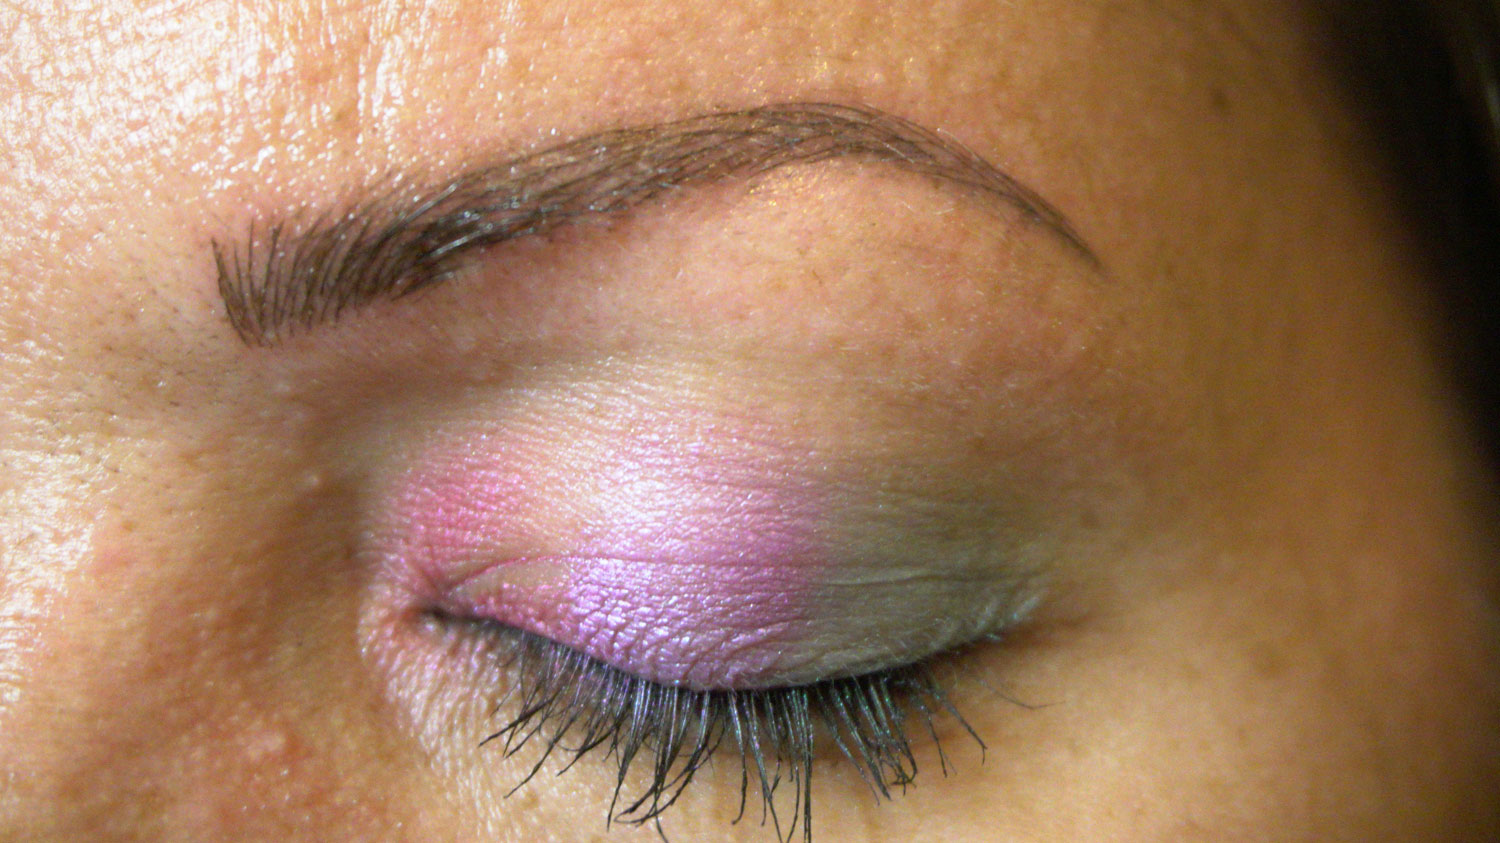 closeup of permanent makeup microblade eyebrow after procedure